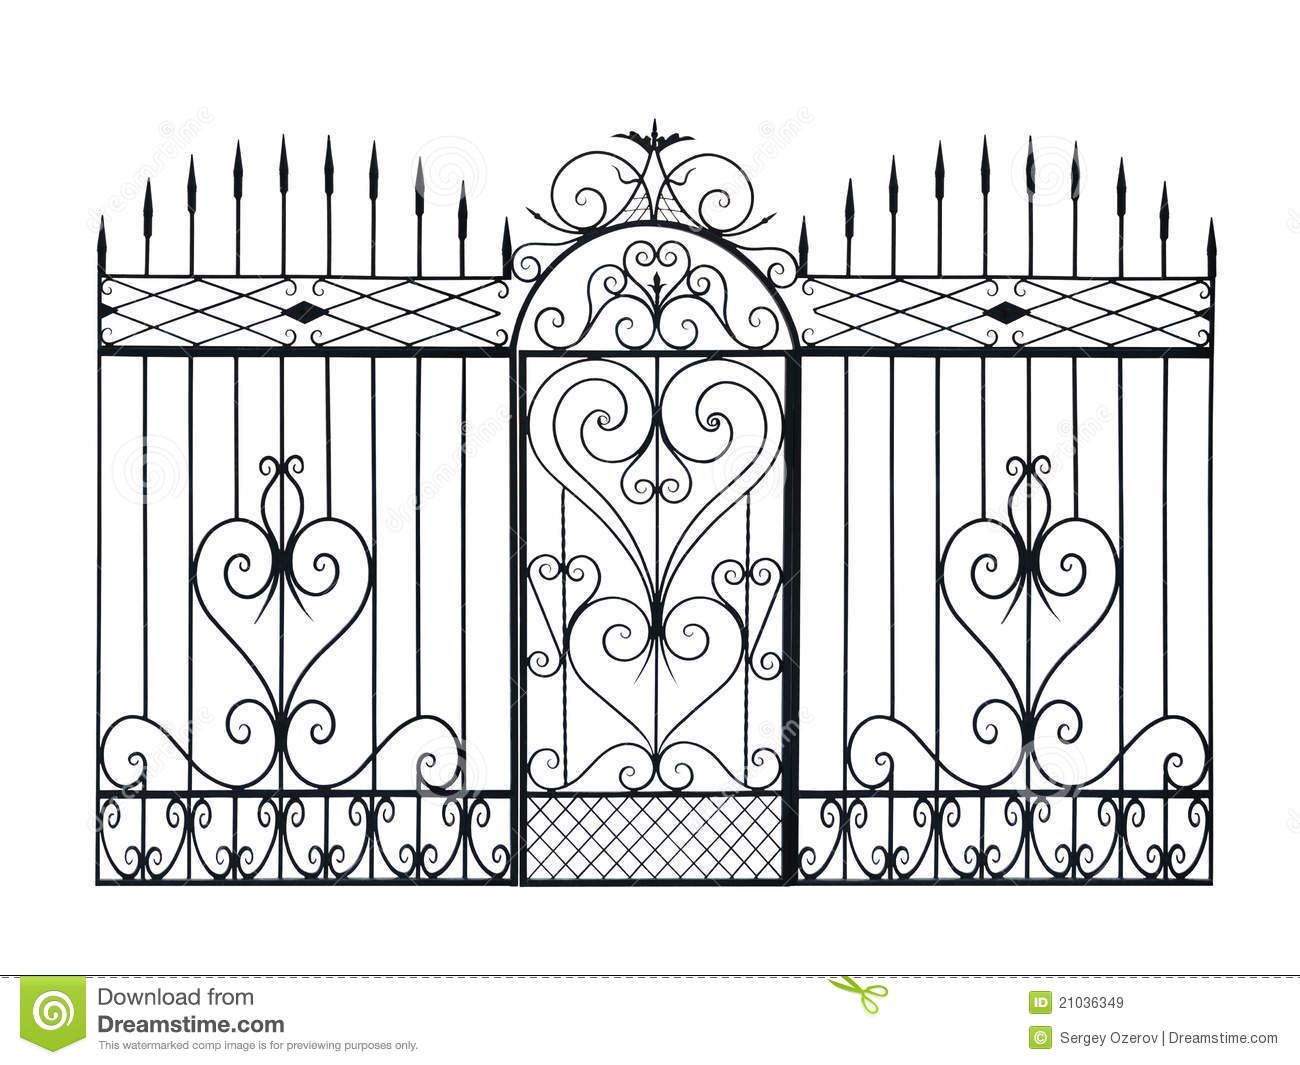 Royalty-Free Stock Photo. Download Old Forged Fence And Door ...  sc 1 st  Dreamstime.com & Old Forged Fence And Door With Ornament. Stock Illustration ... pezcame.com